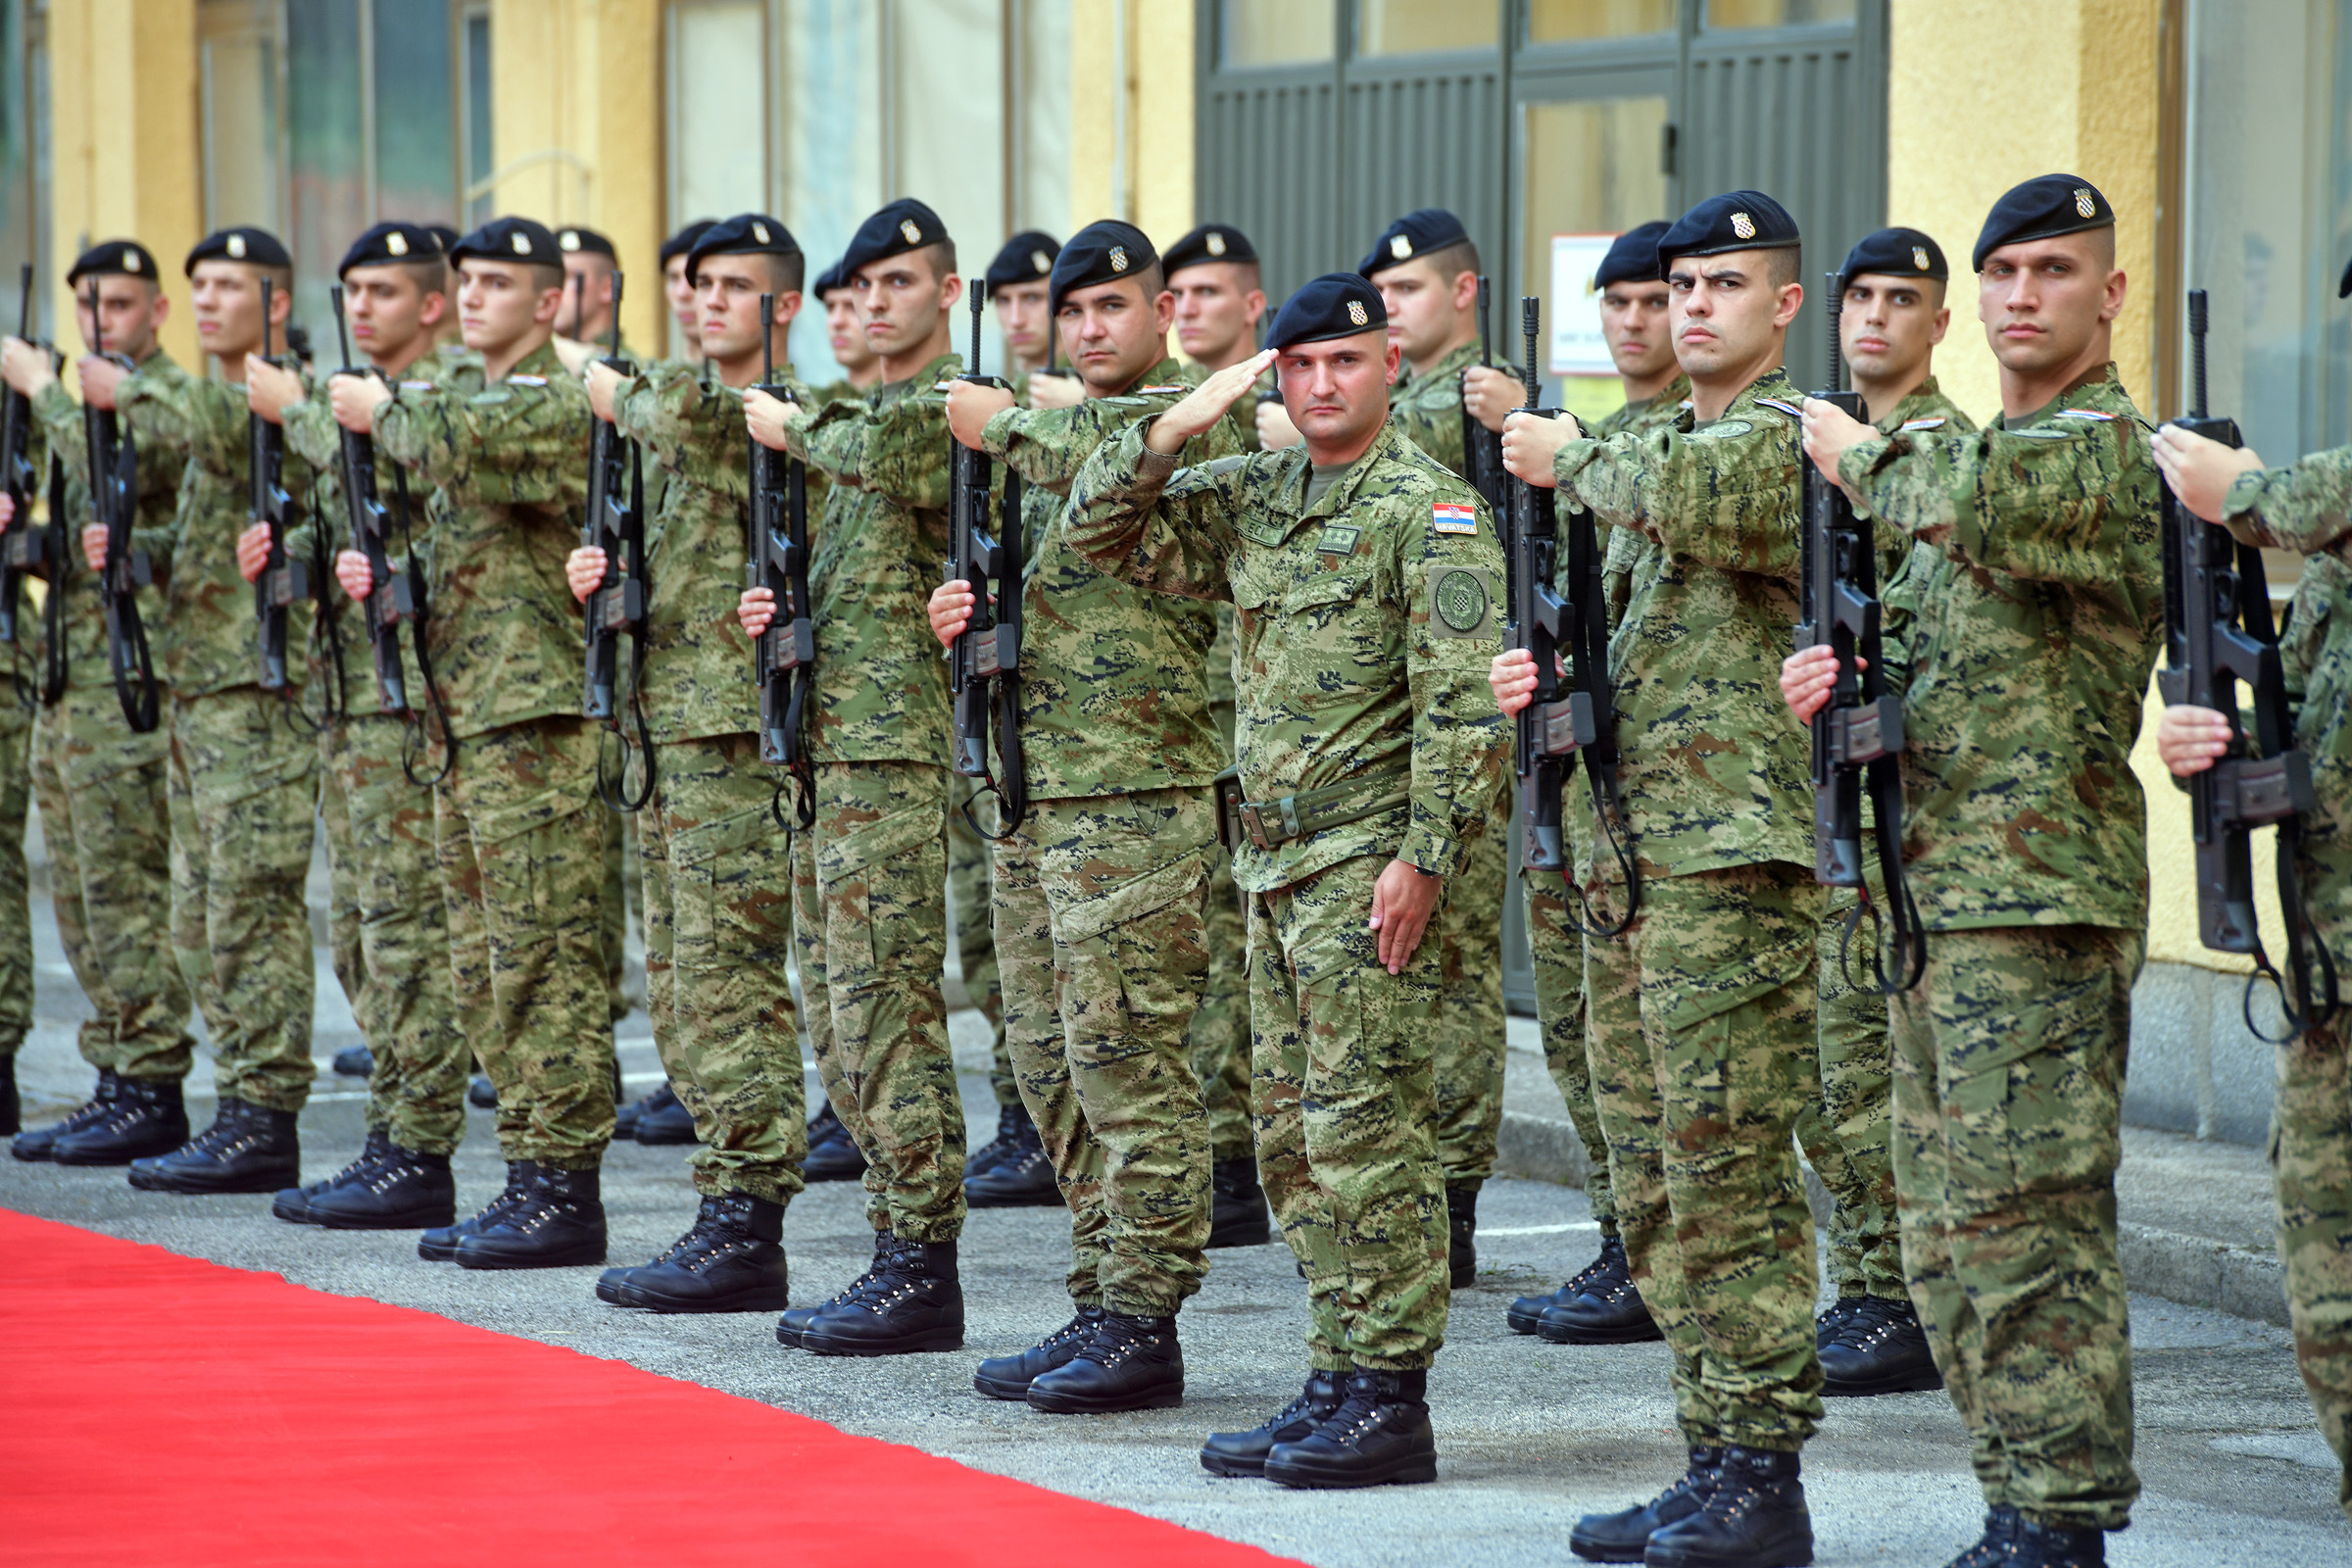 Croatian army